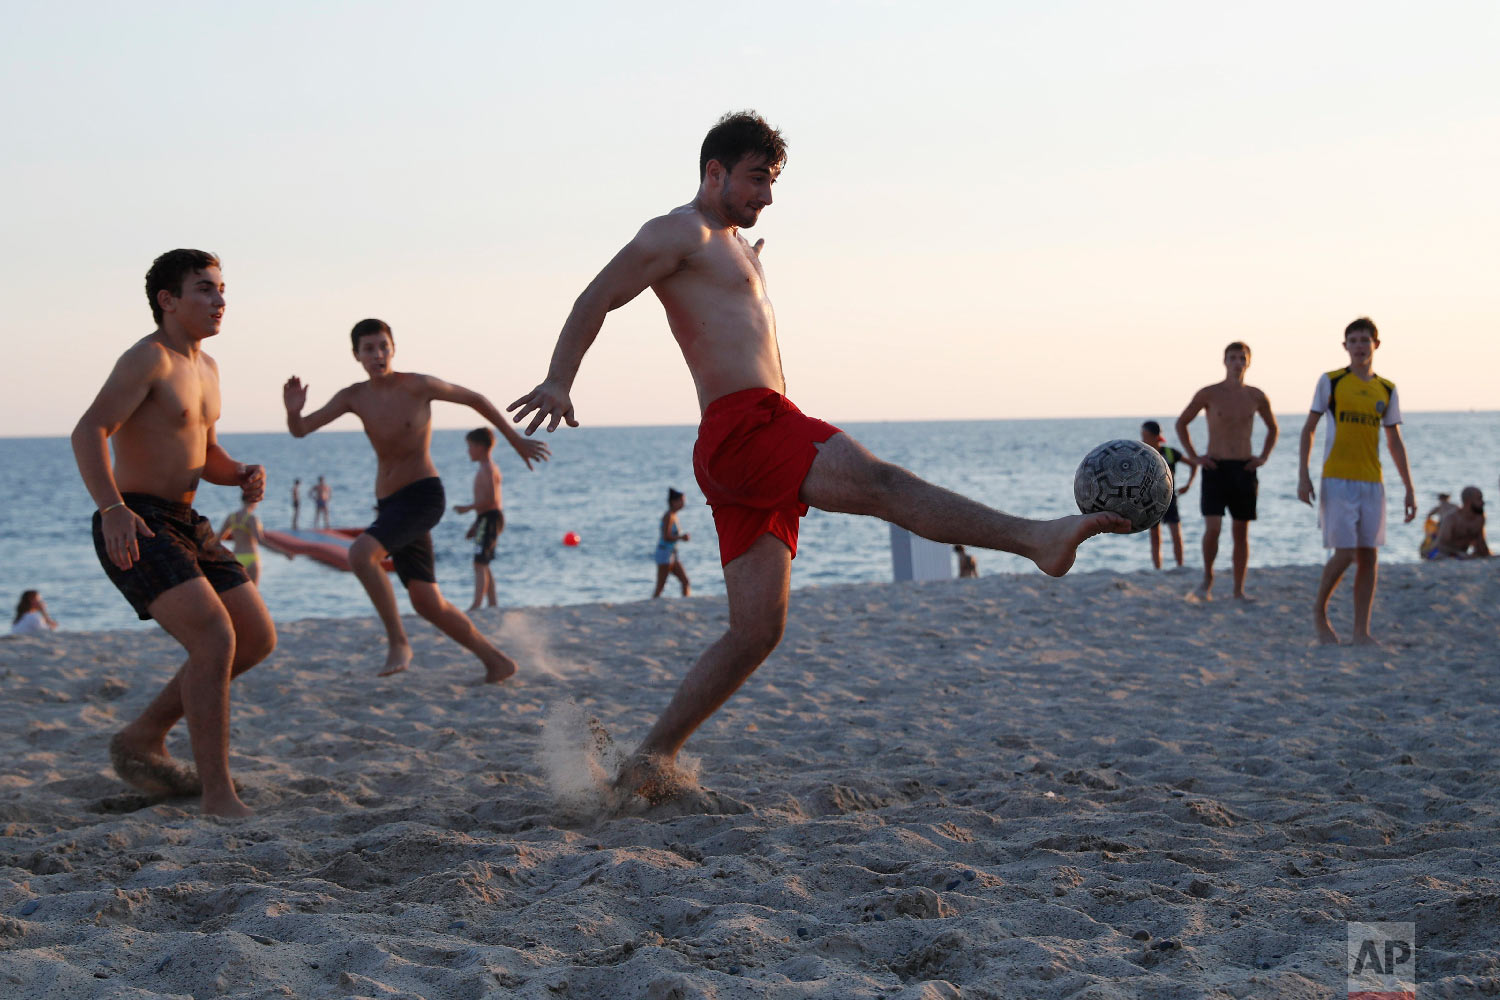 Men play soccer on the Black sea waterfront in Sochi, Russia during the 2018 soccer World Cup on Sunday, July 8, 2018. (AP Photo/Pavel Golovkin)